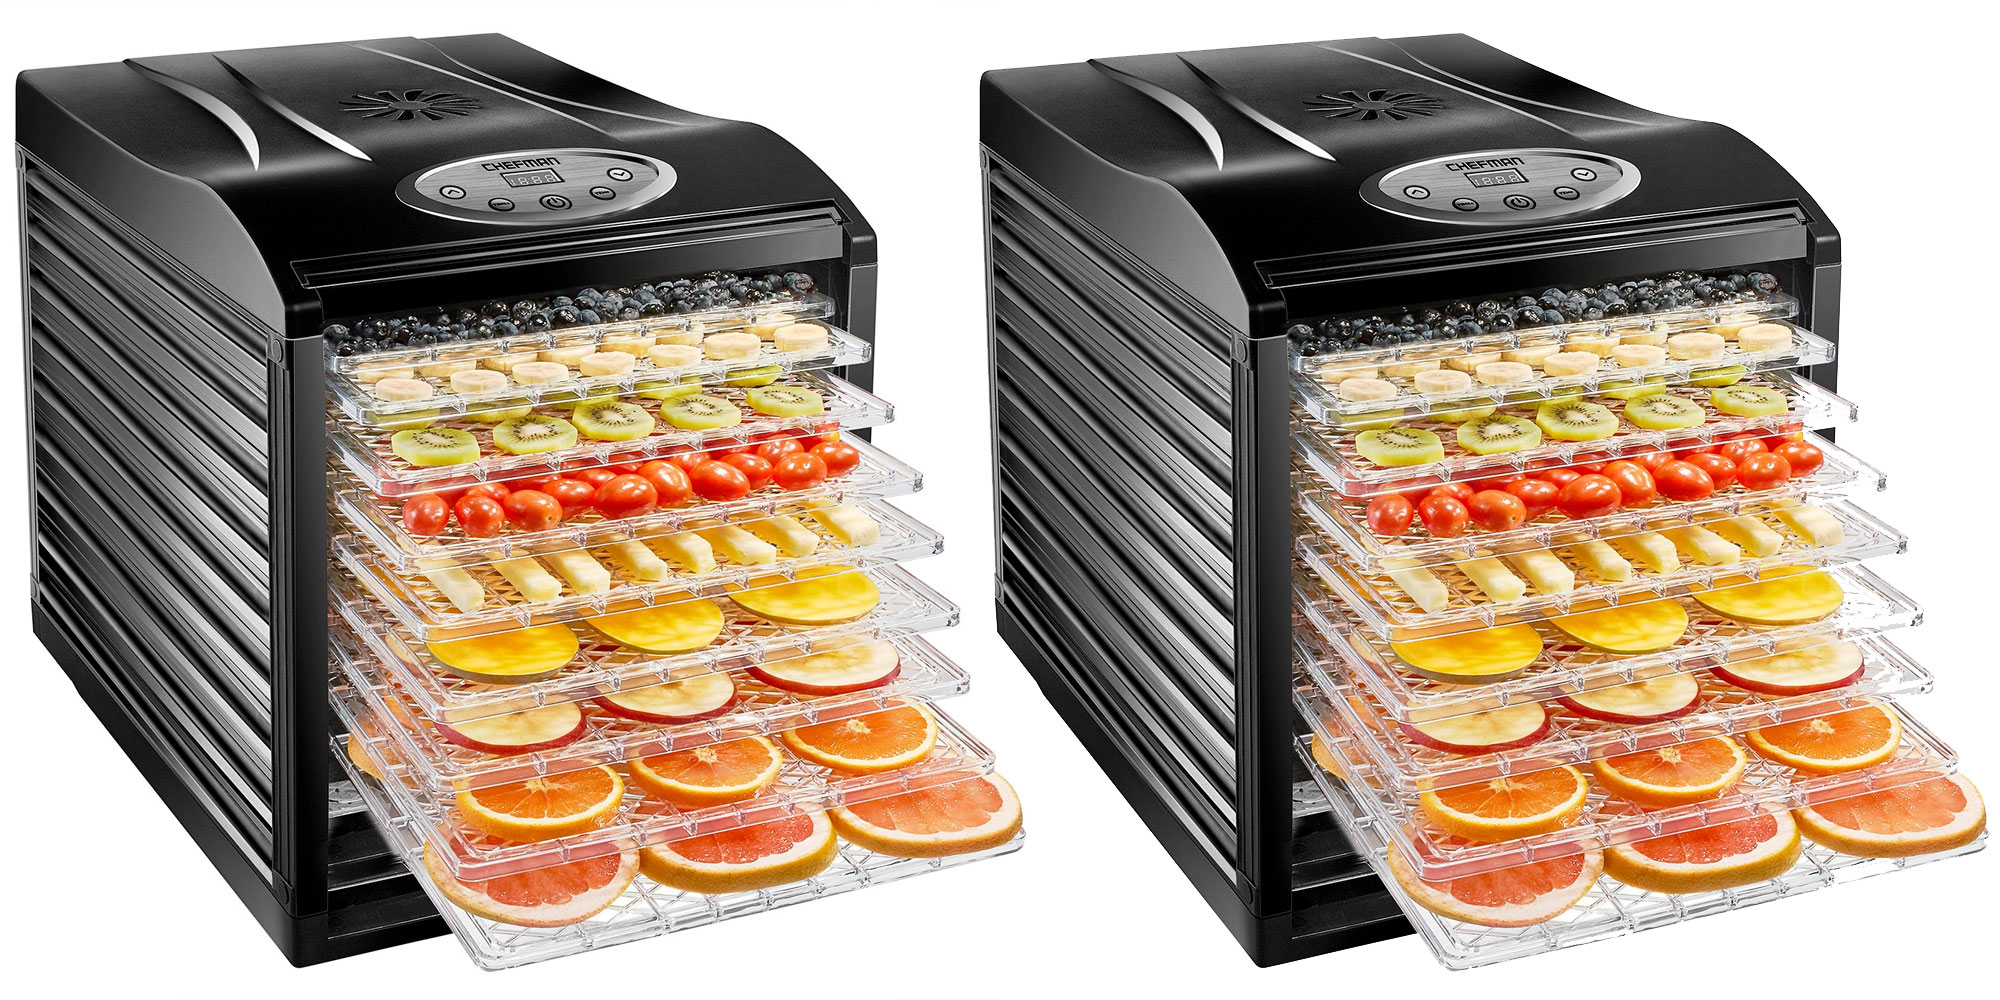 Make homemade jerky, dried marshmallows, more w/ this $100 9-tray food dehydrator (50% off)